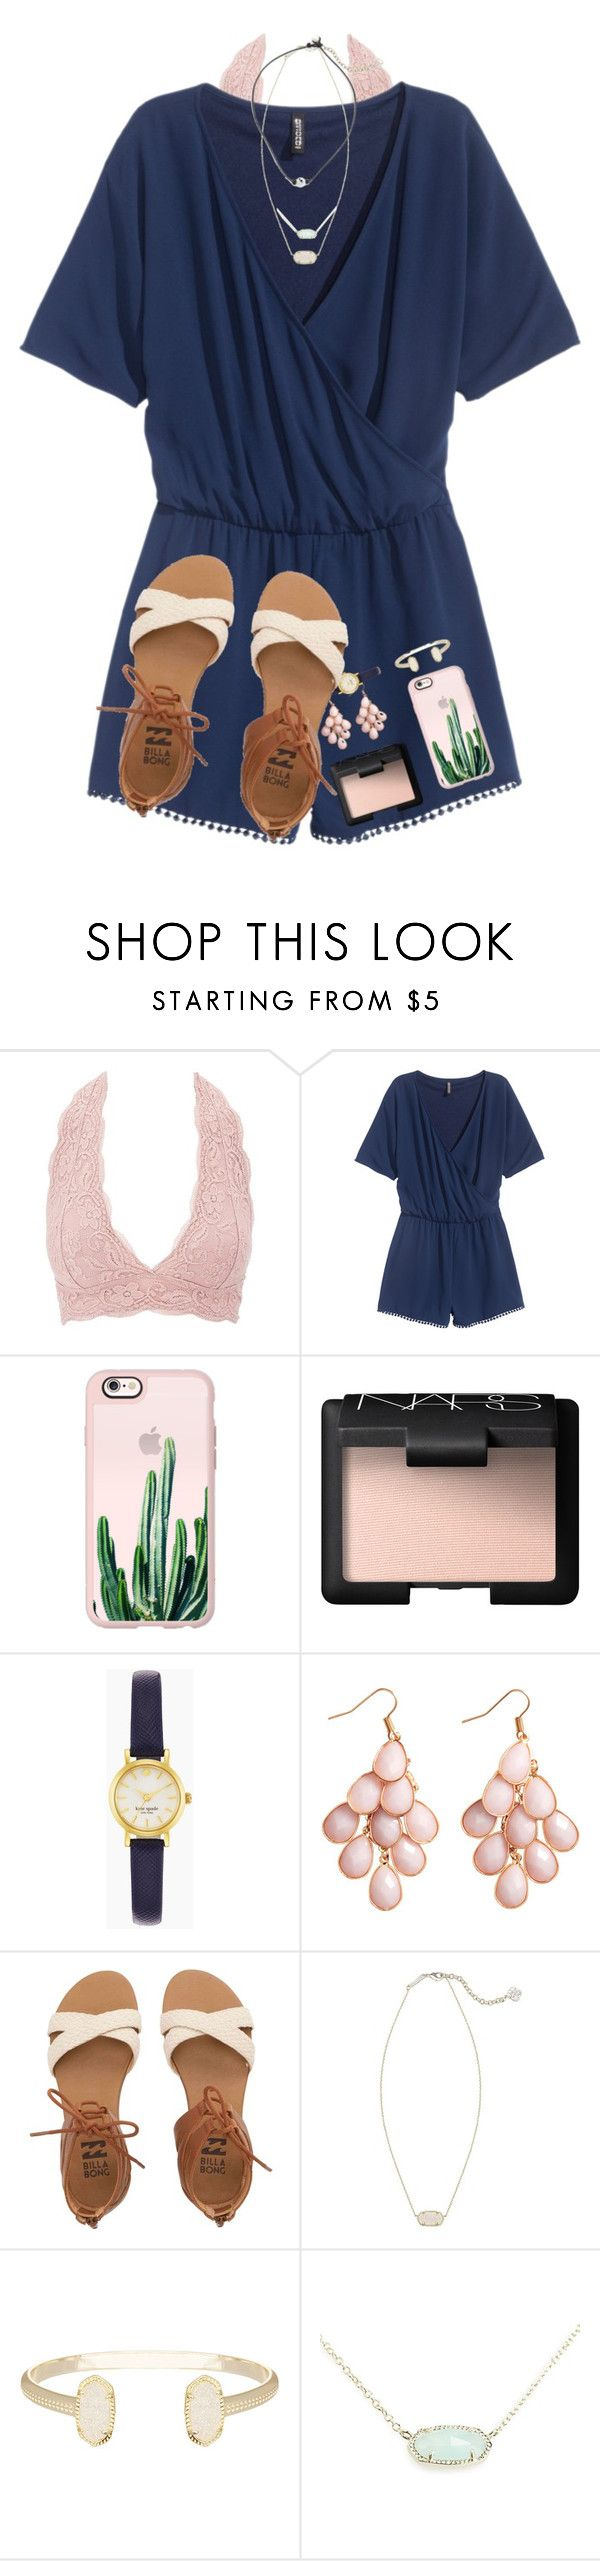 """""""some people are worth melting for"""" by evedriggers ❤ liked on Polyvore featuring Charlotte Russe, H&M, Casetify, NARS Cosmetics, Kate Spade, Billabong and Kendra Scott"""